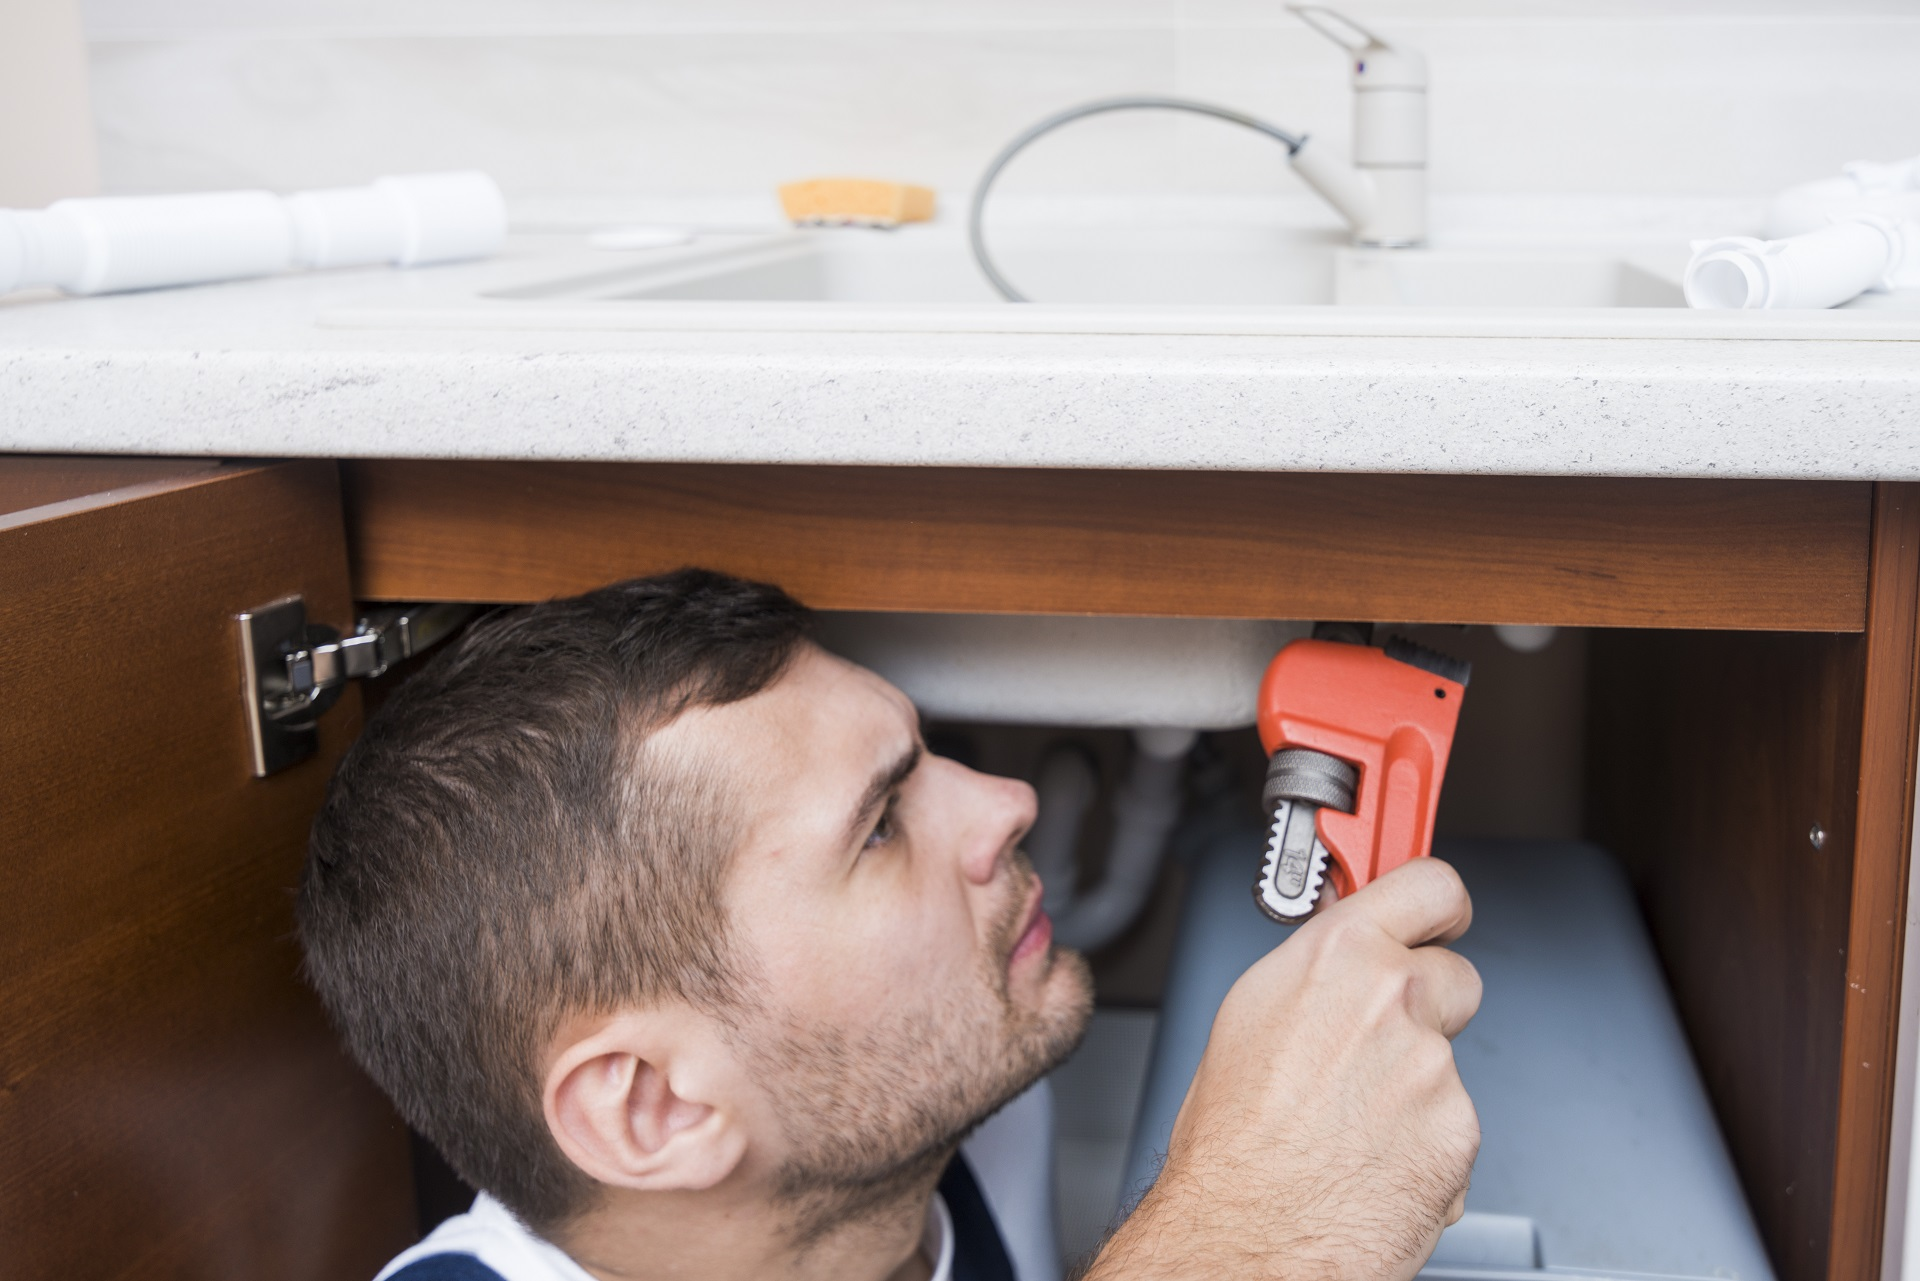 Plumber with a wrench working underneath a kitchen sink in Abbotsford